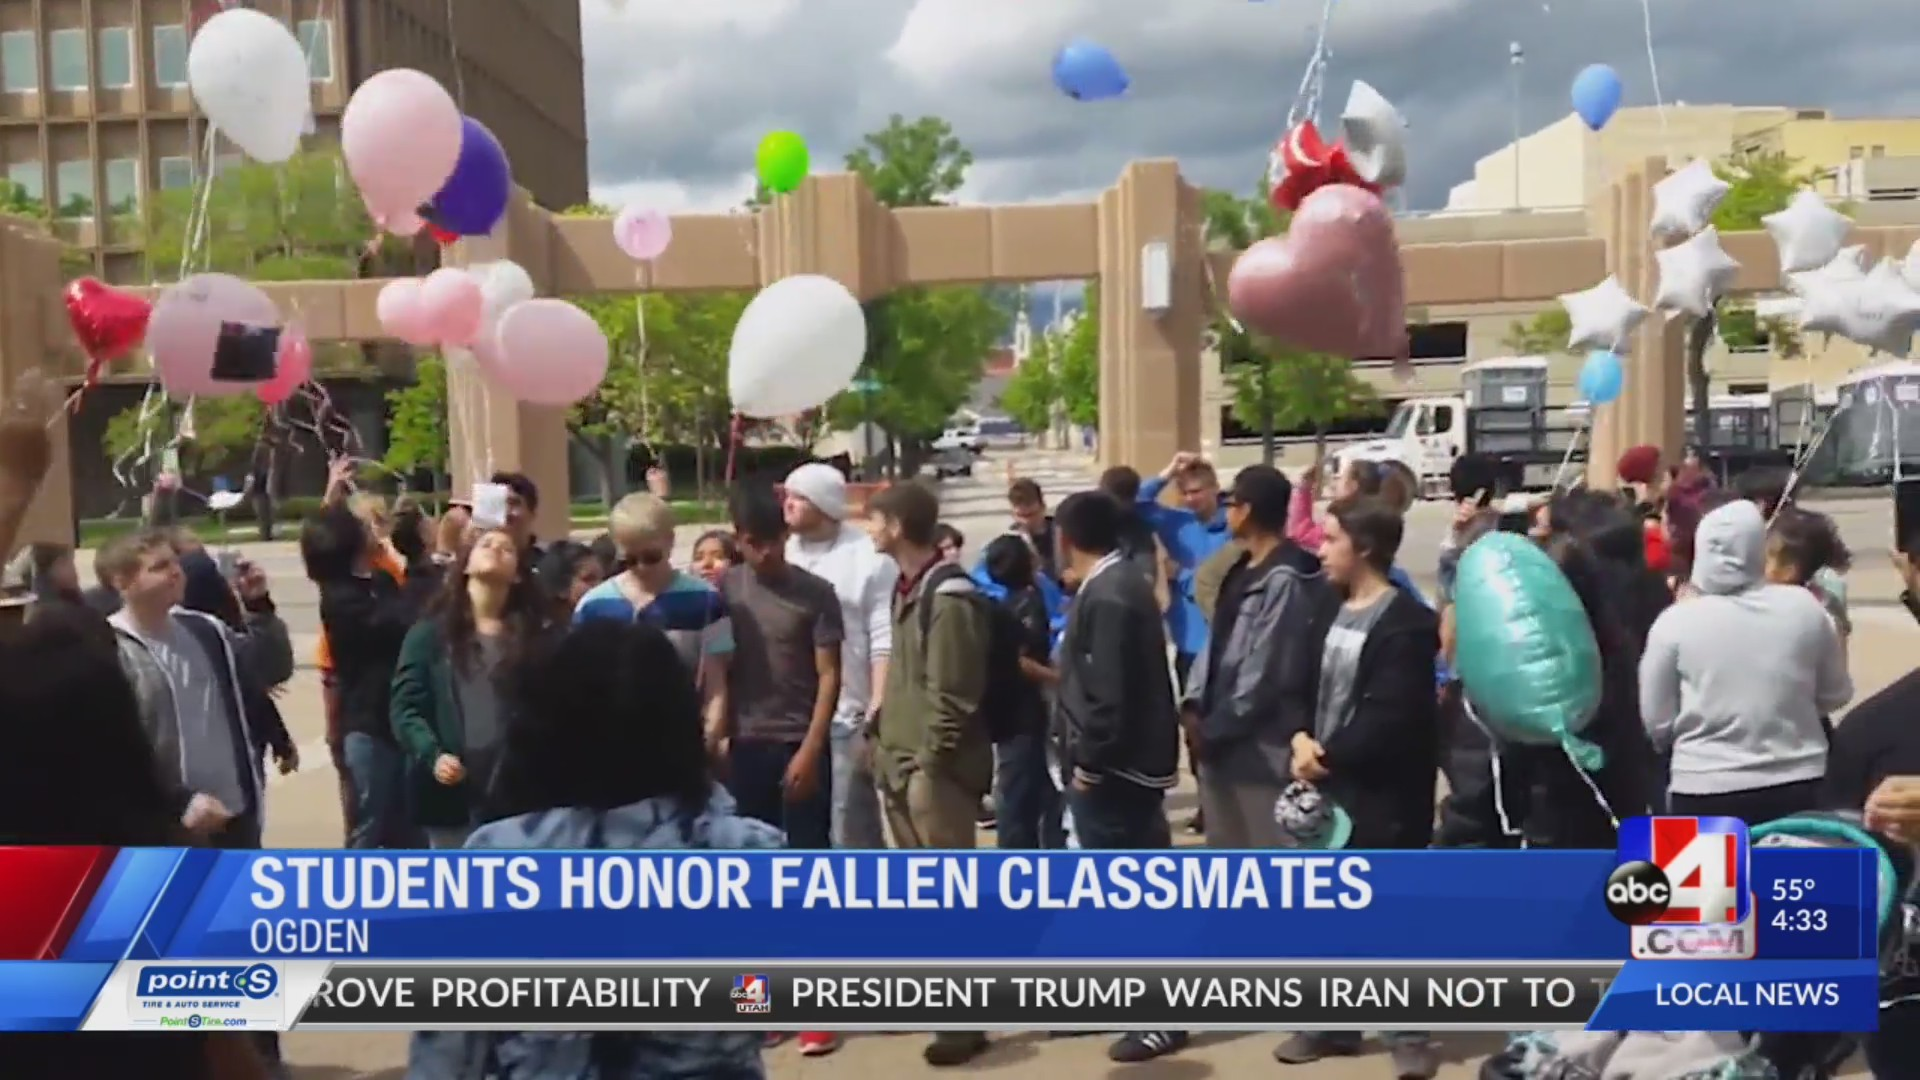 Ogden students petition for more ways to honor fallen classmates